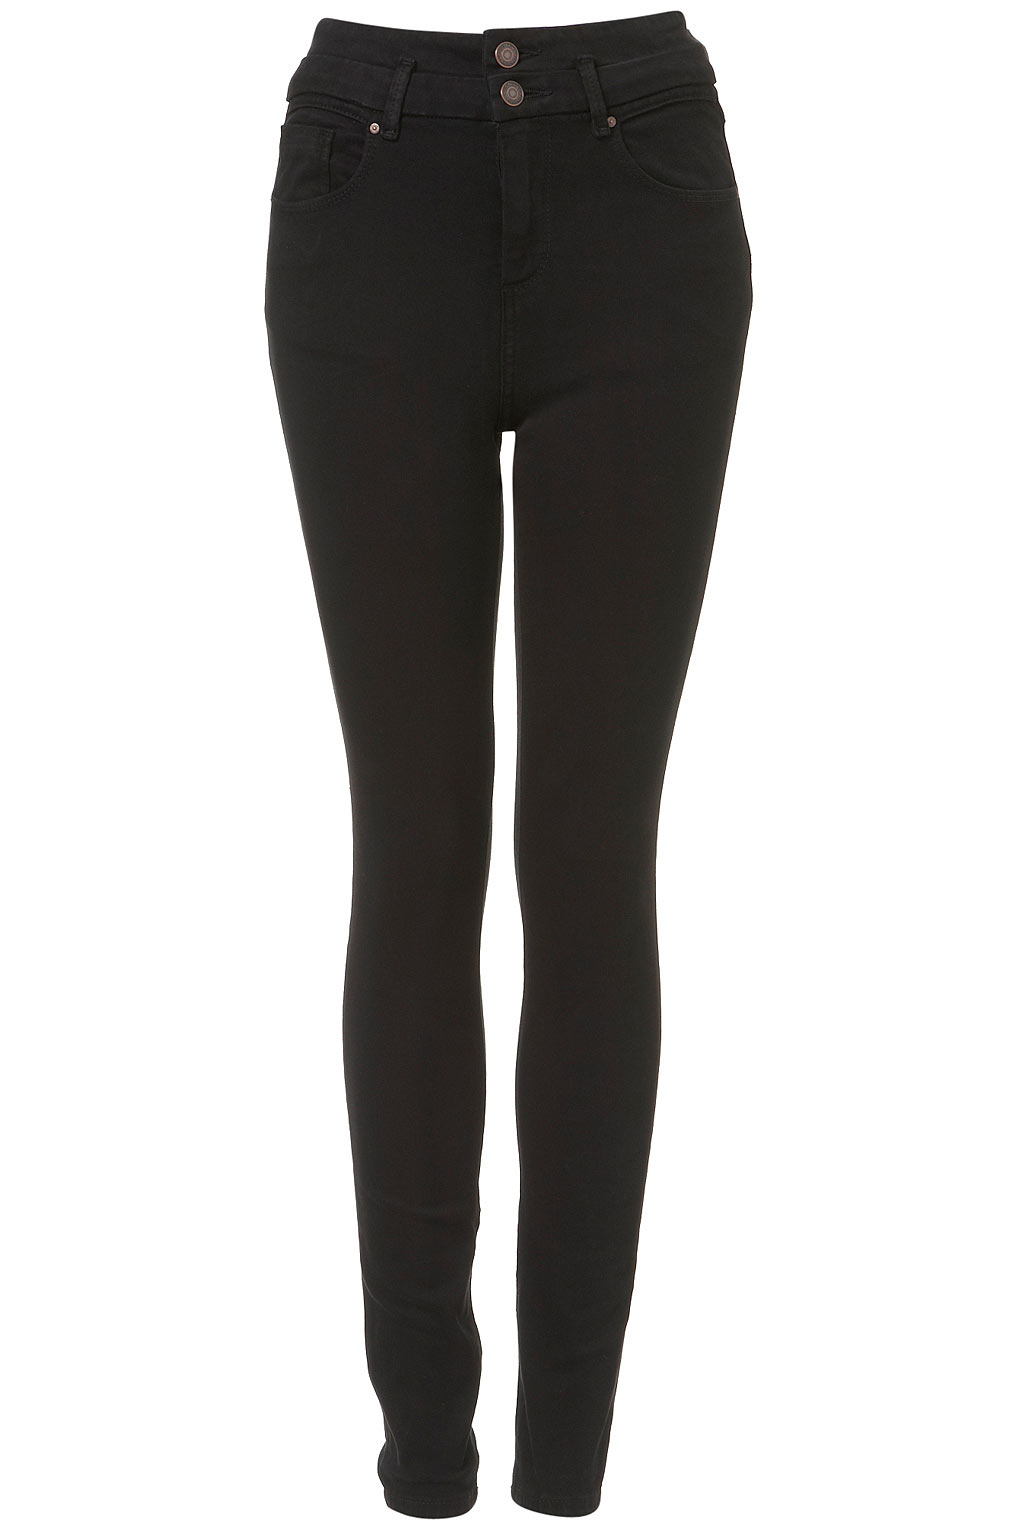 Topshop High Waist Skinny Jeans in Black | Lyst